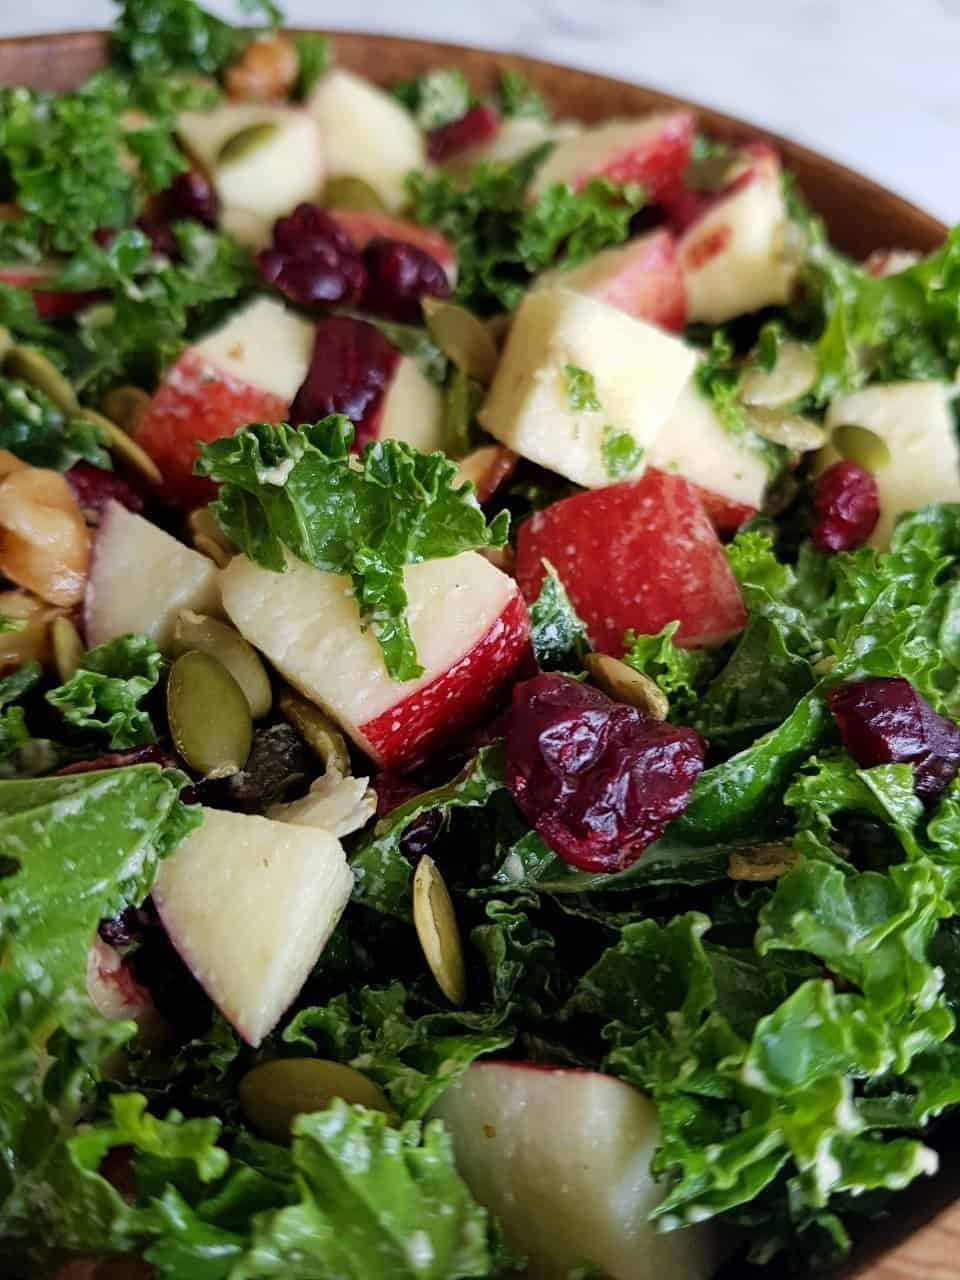 Kale and apple salad in a wooden bowl.